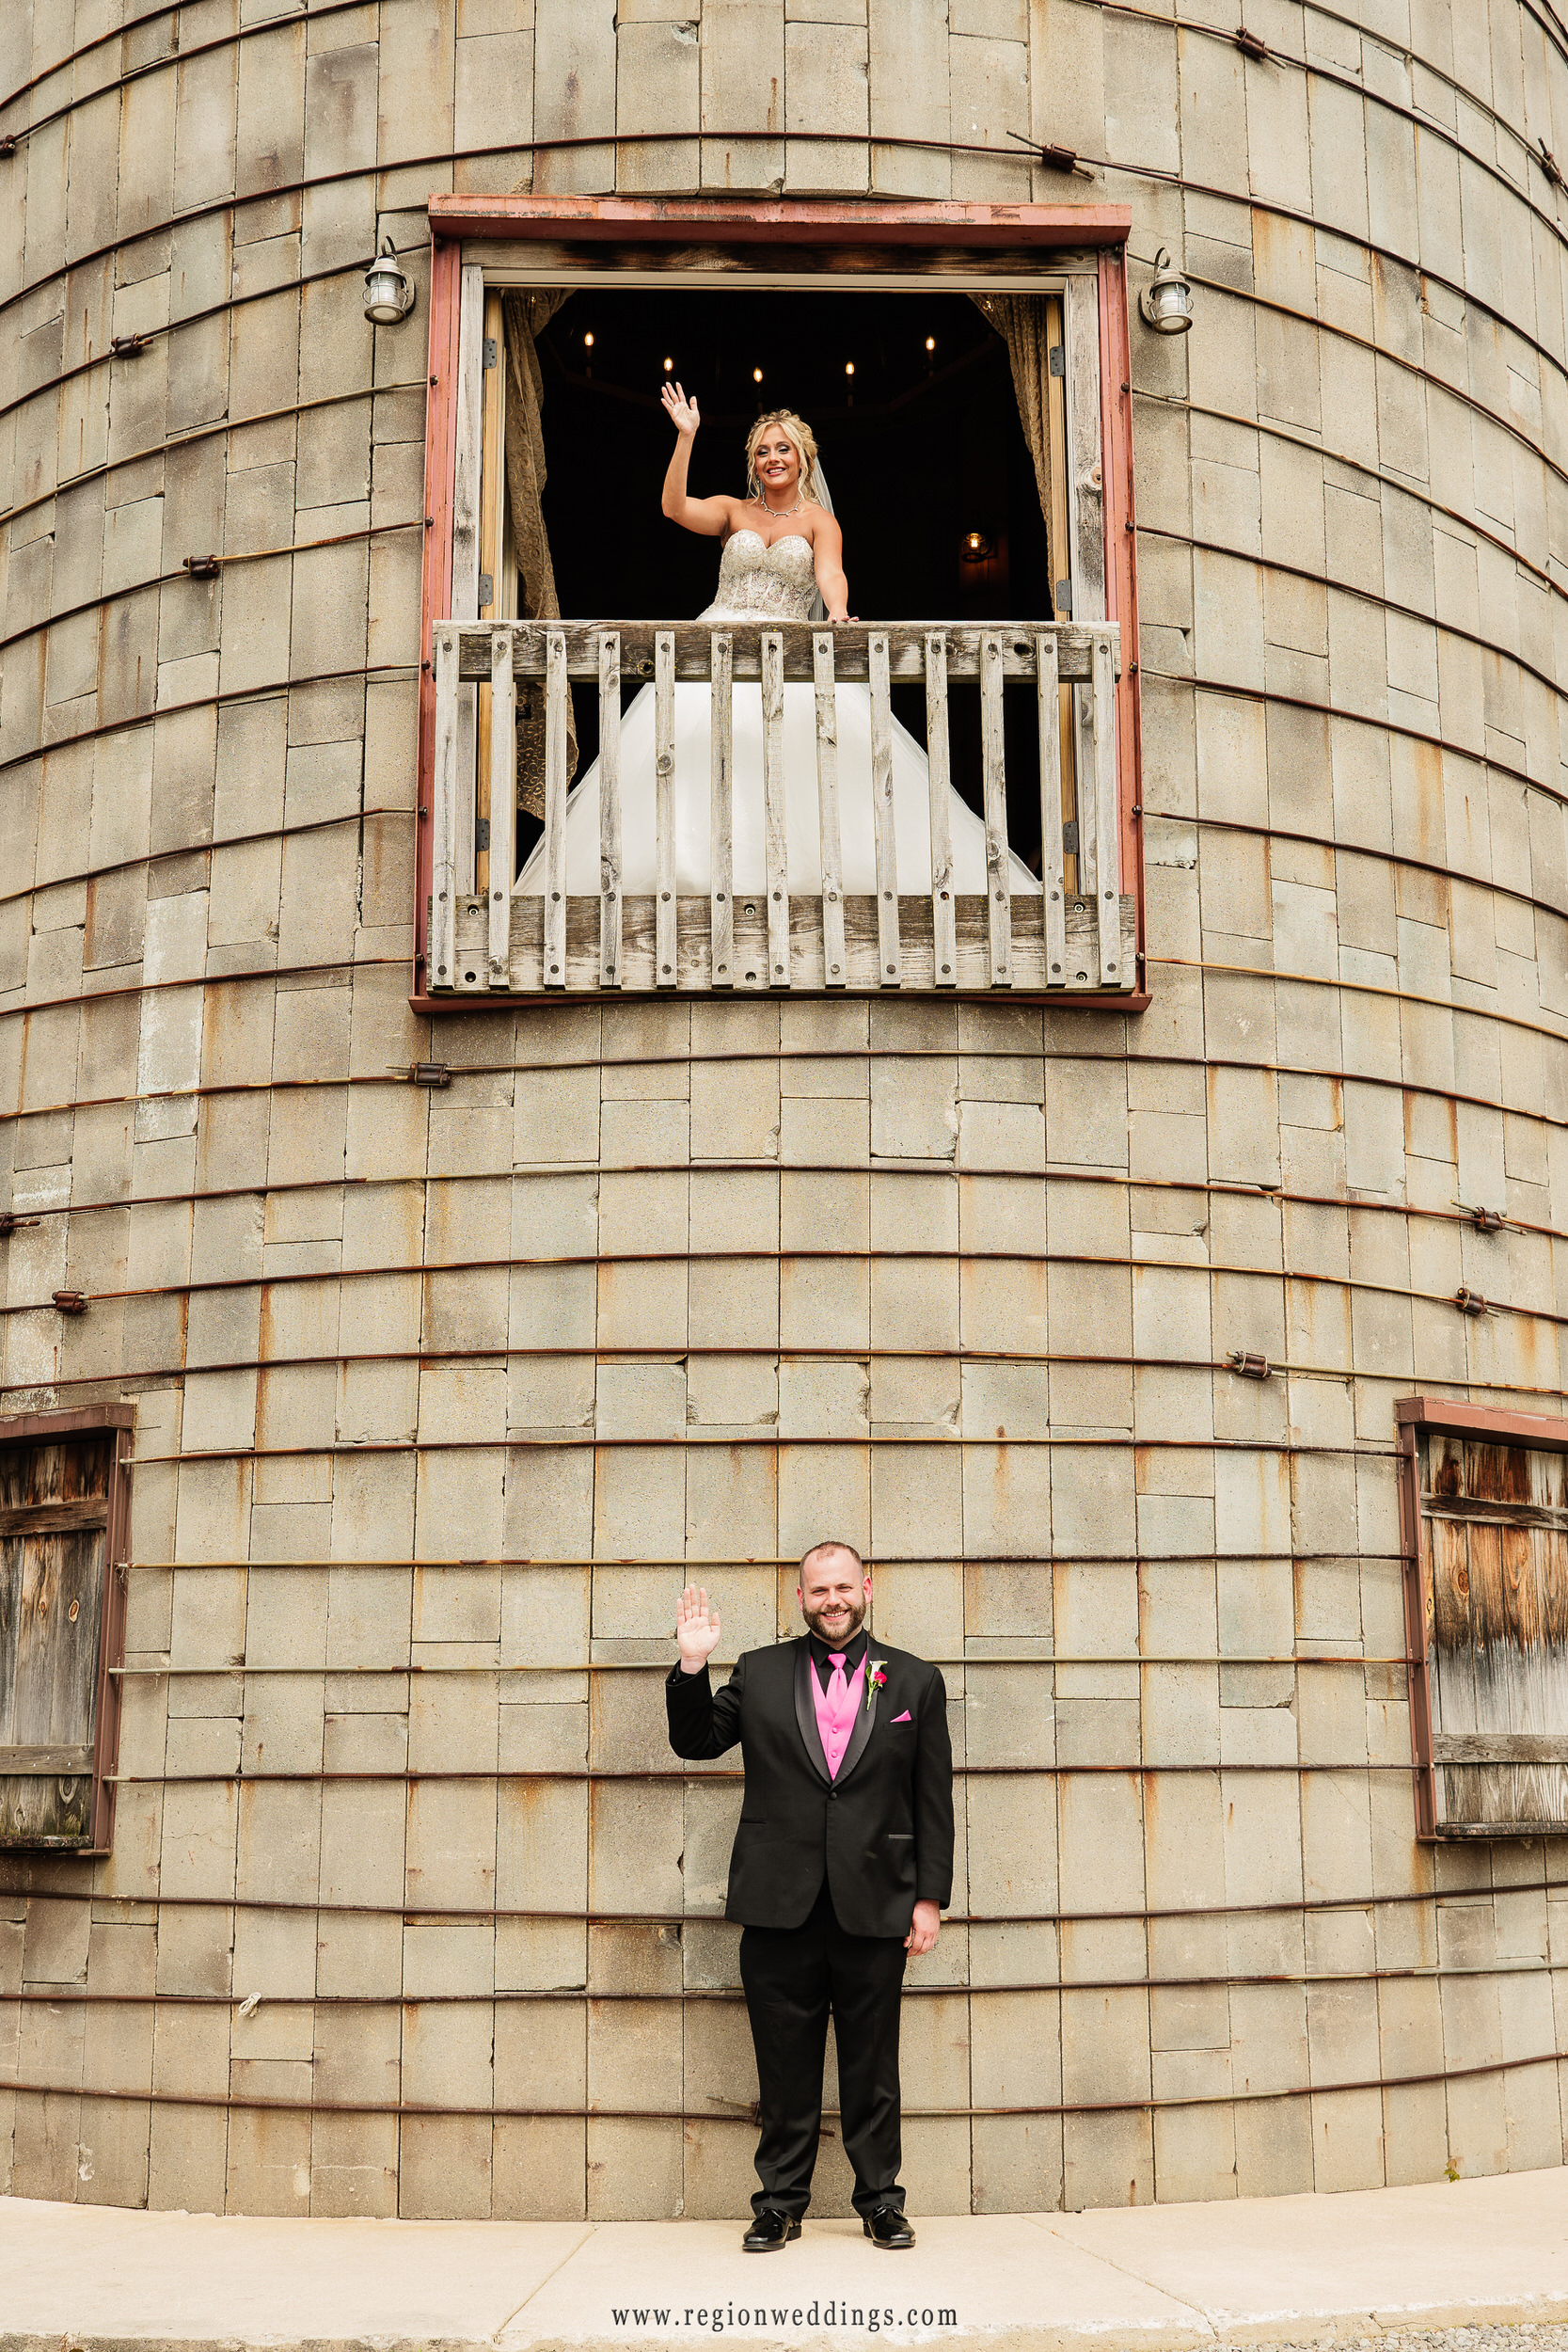 Bride and groom wave outside the grain silo at County Line Orchard.